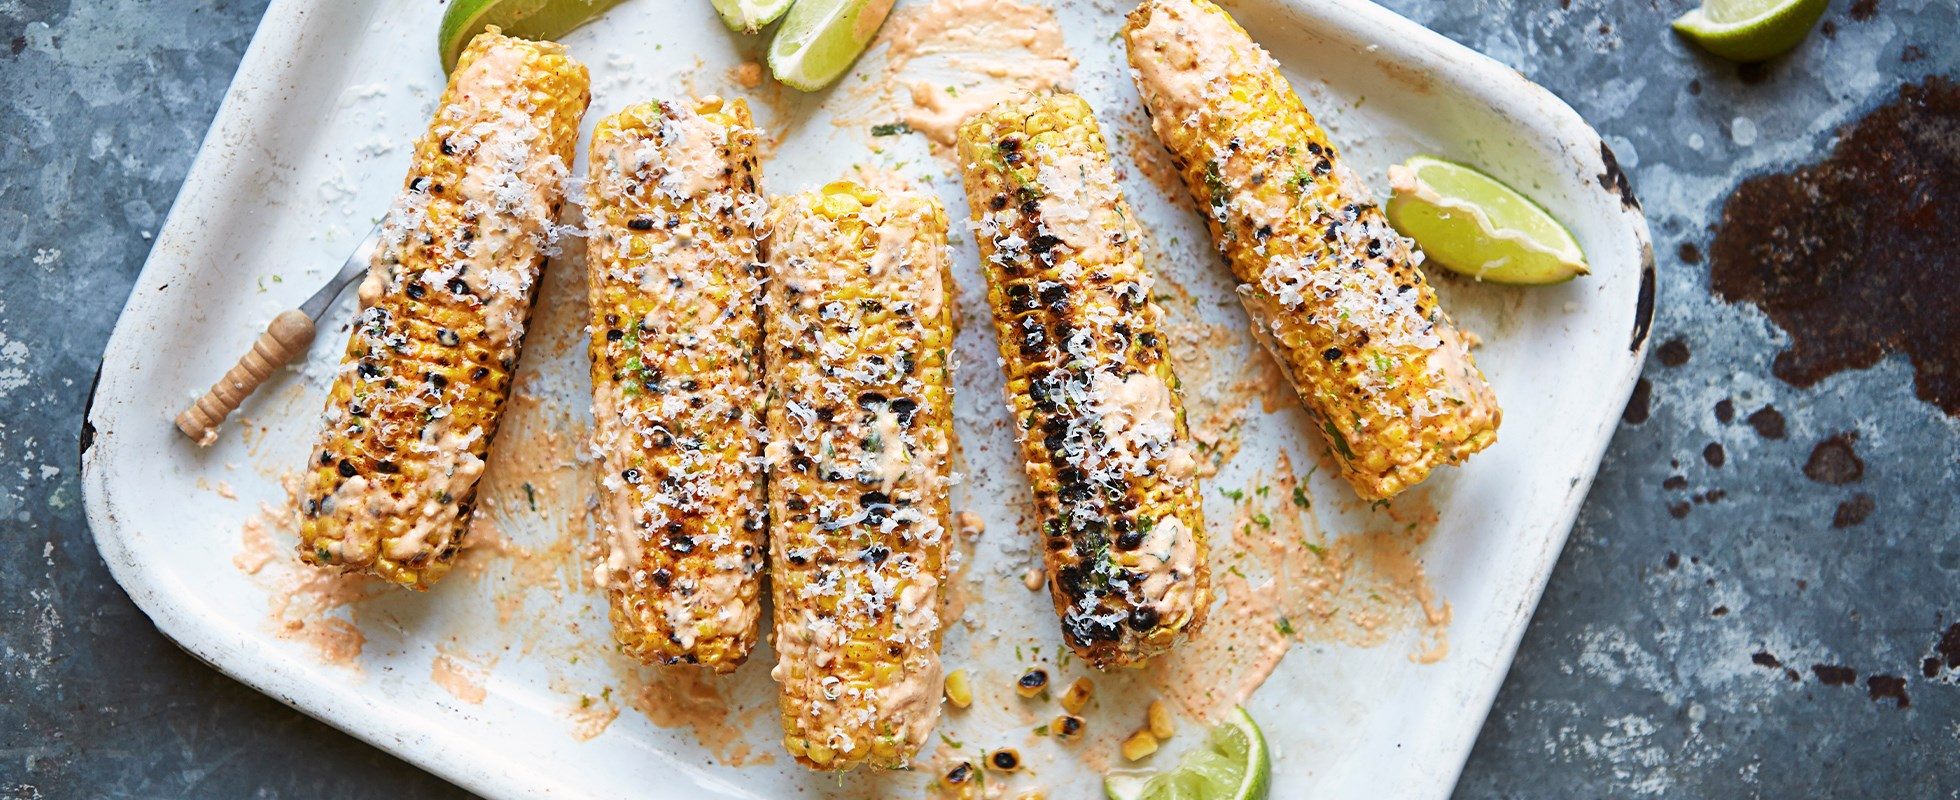 Spiced corn on the cob